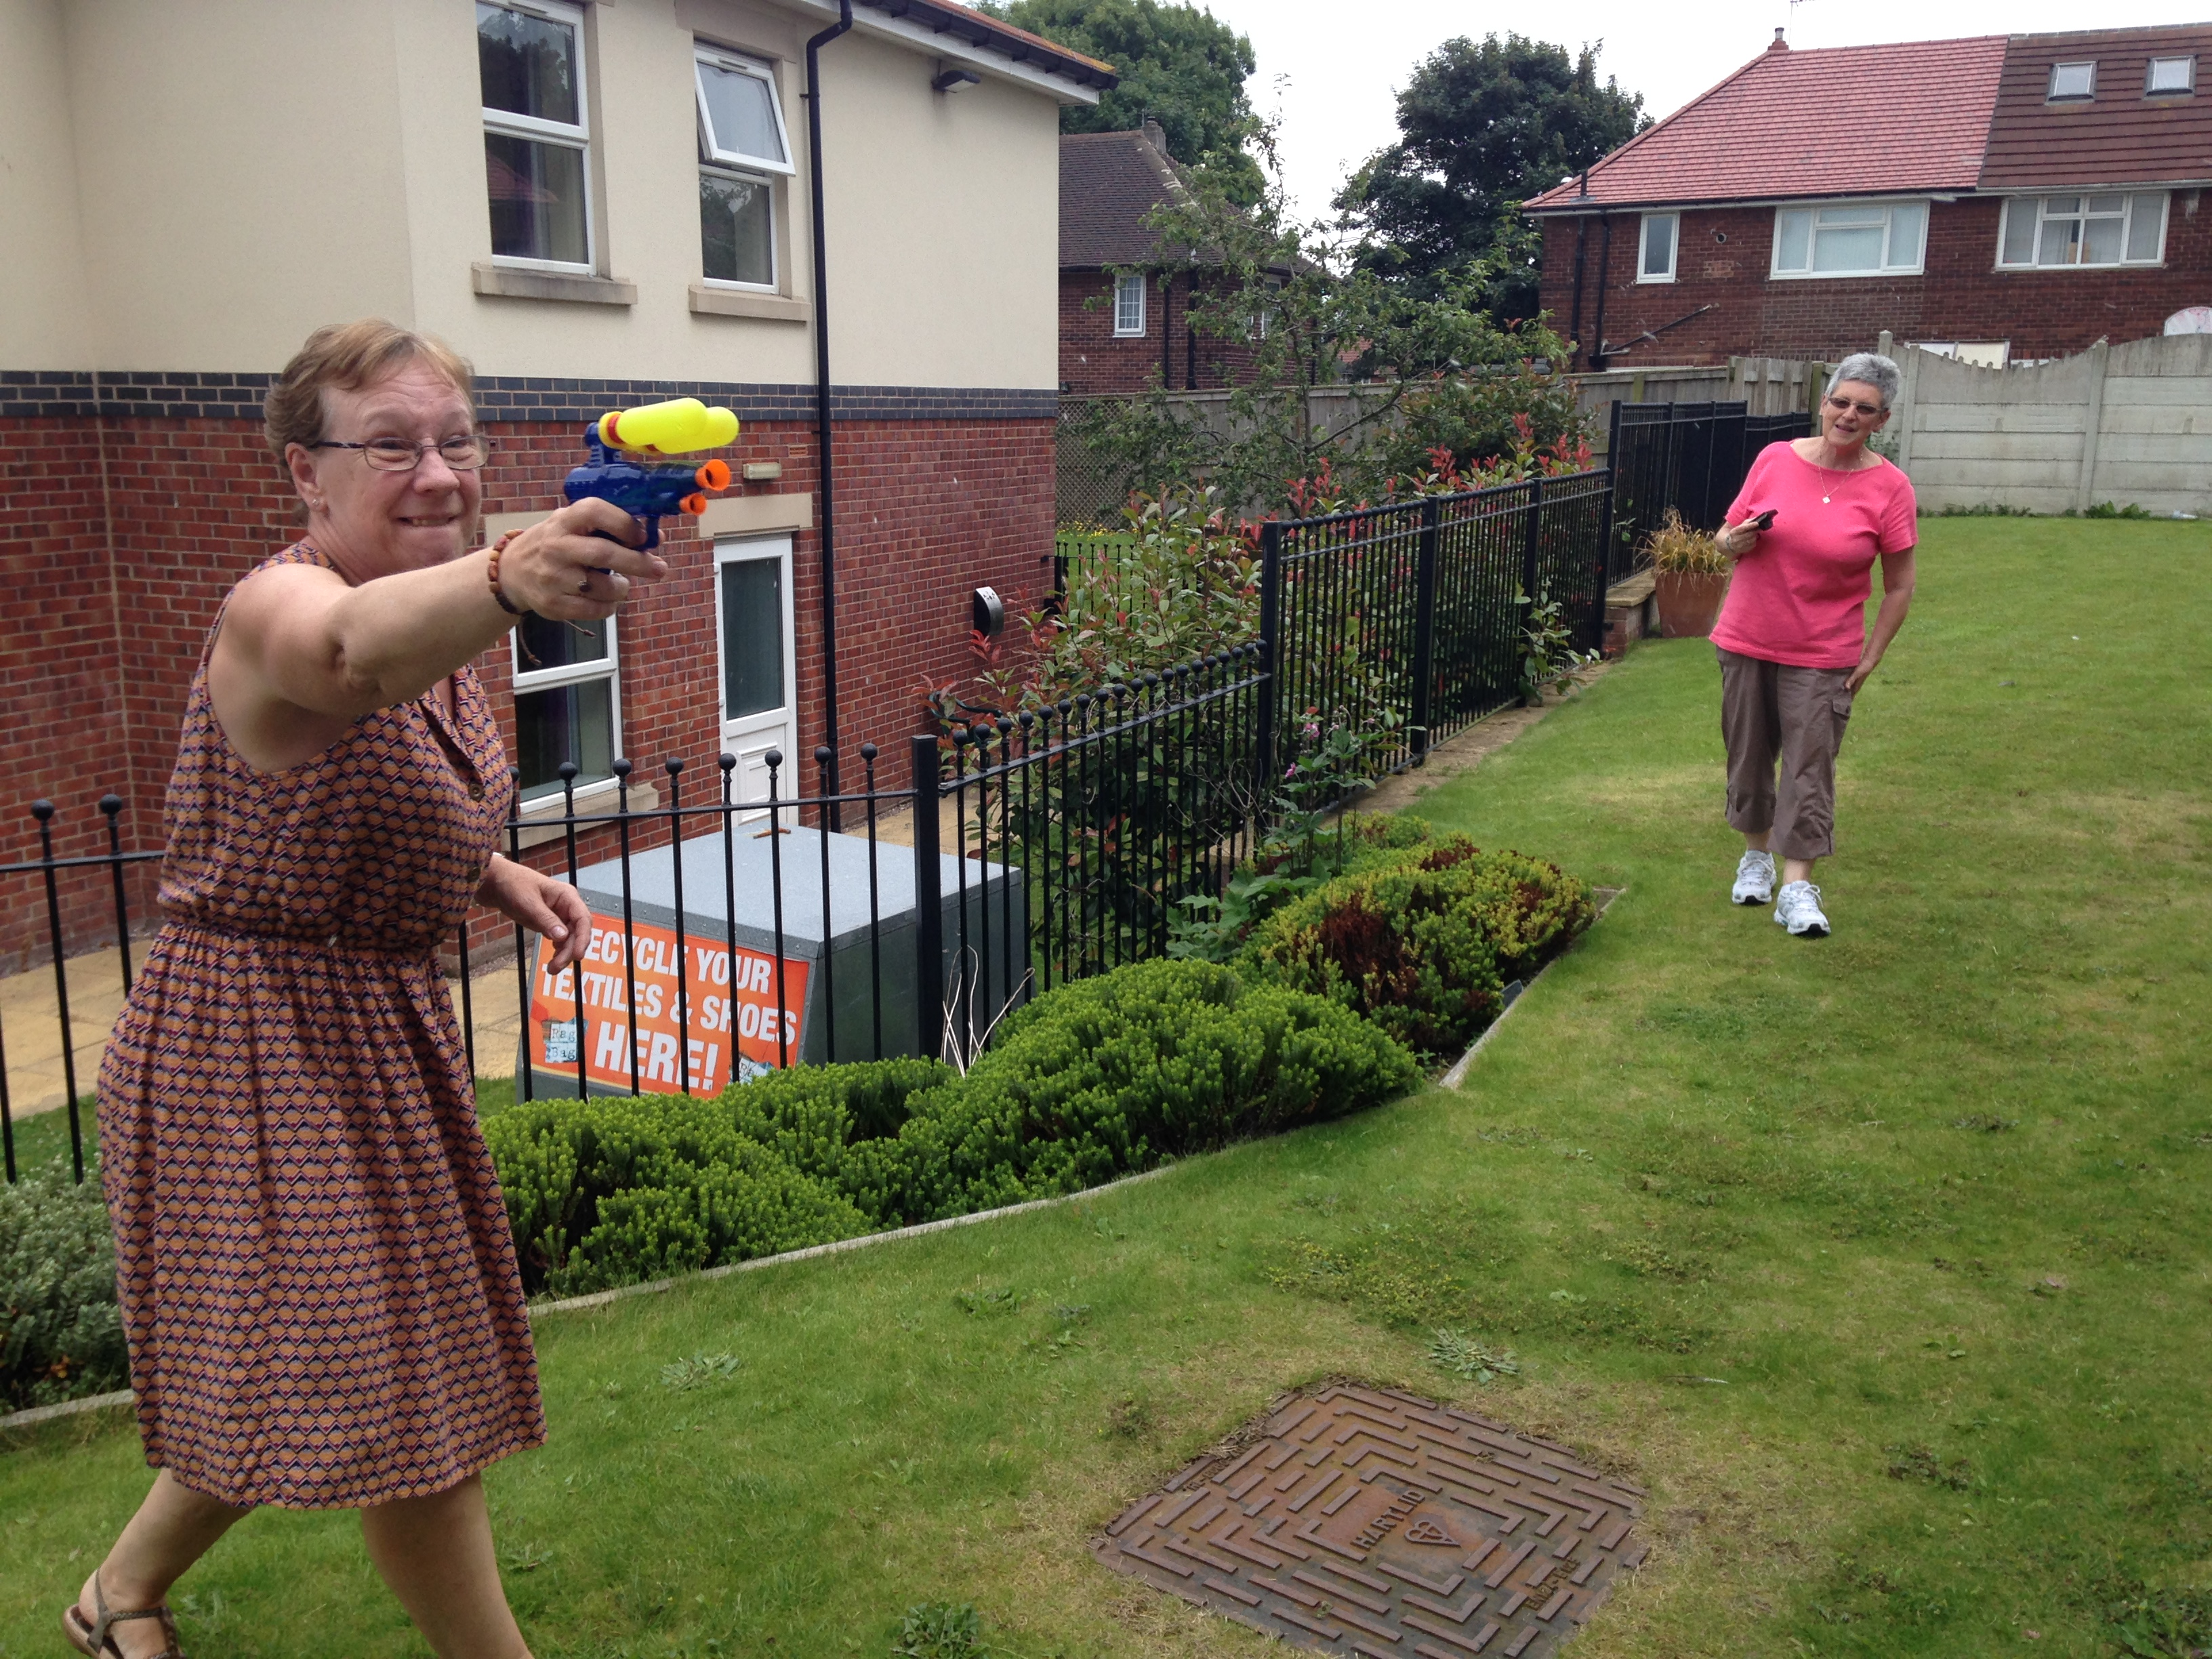 Janet with her water pistol